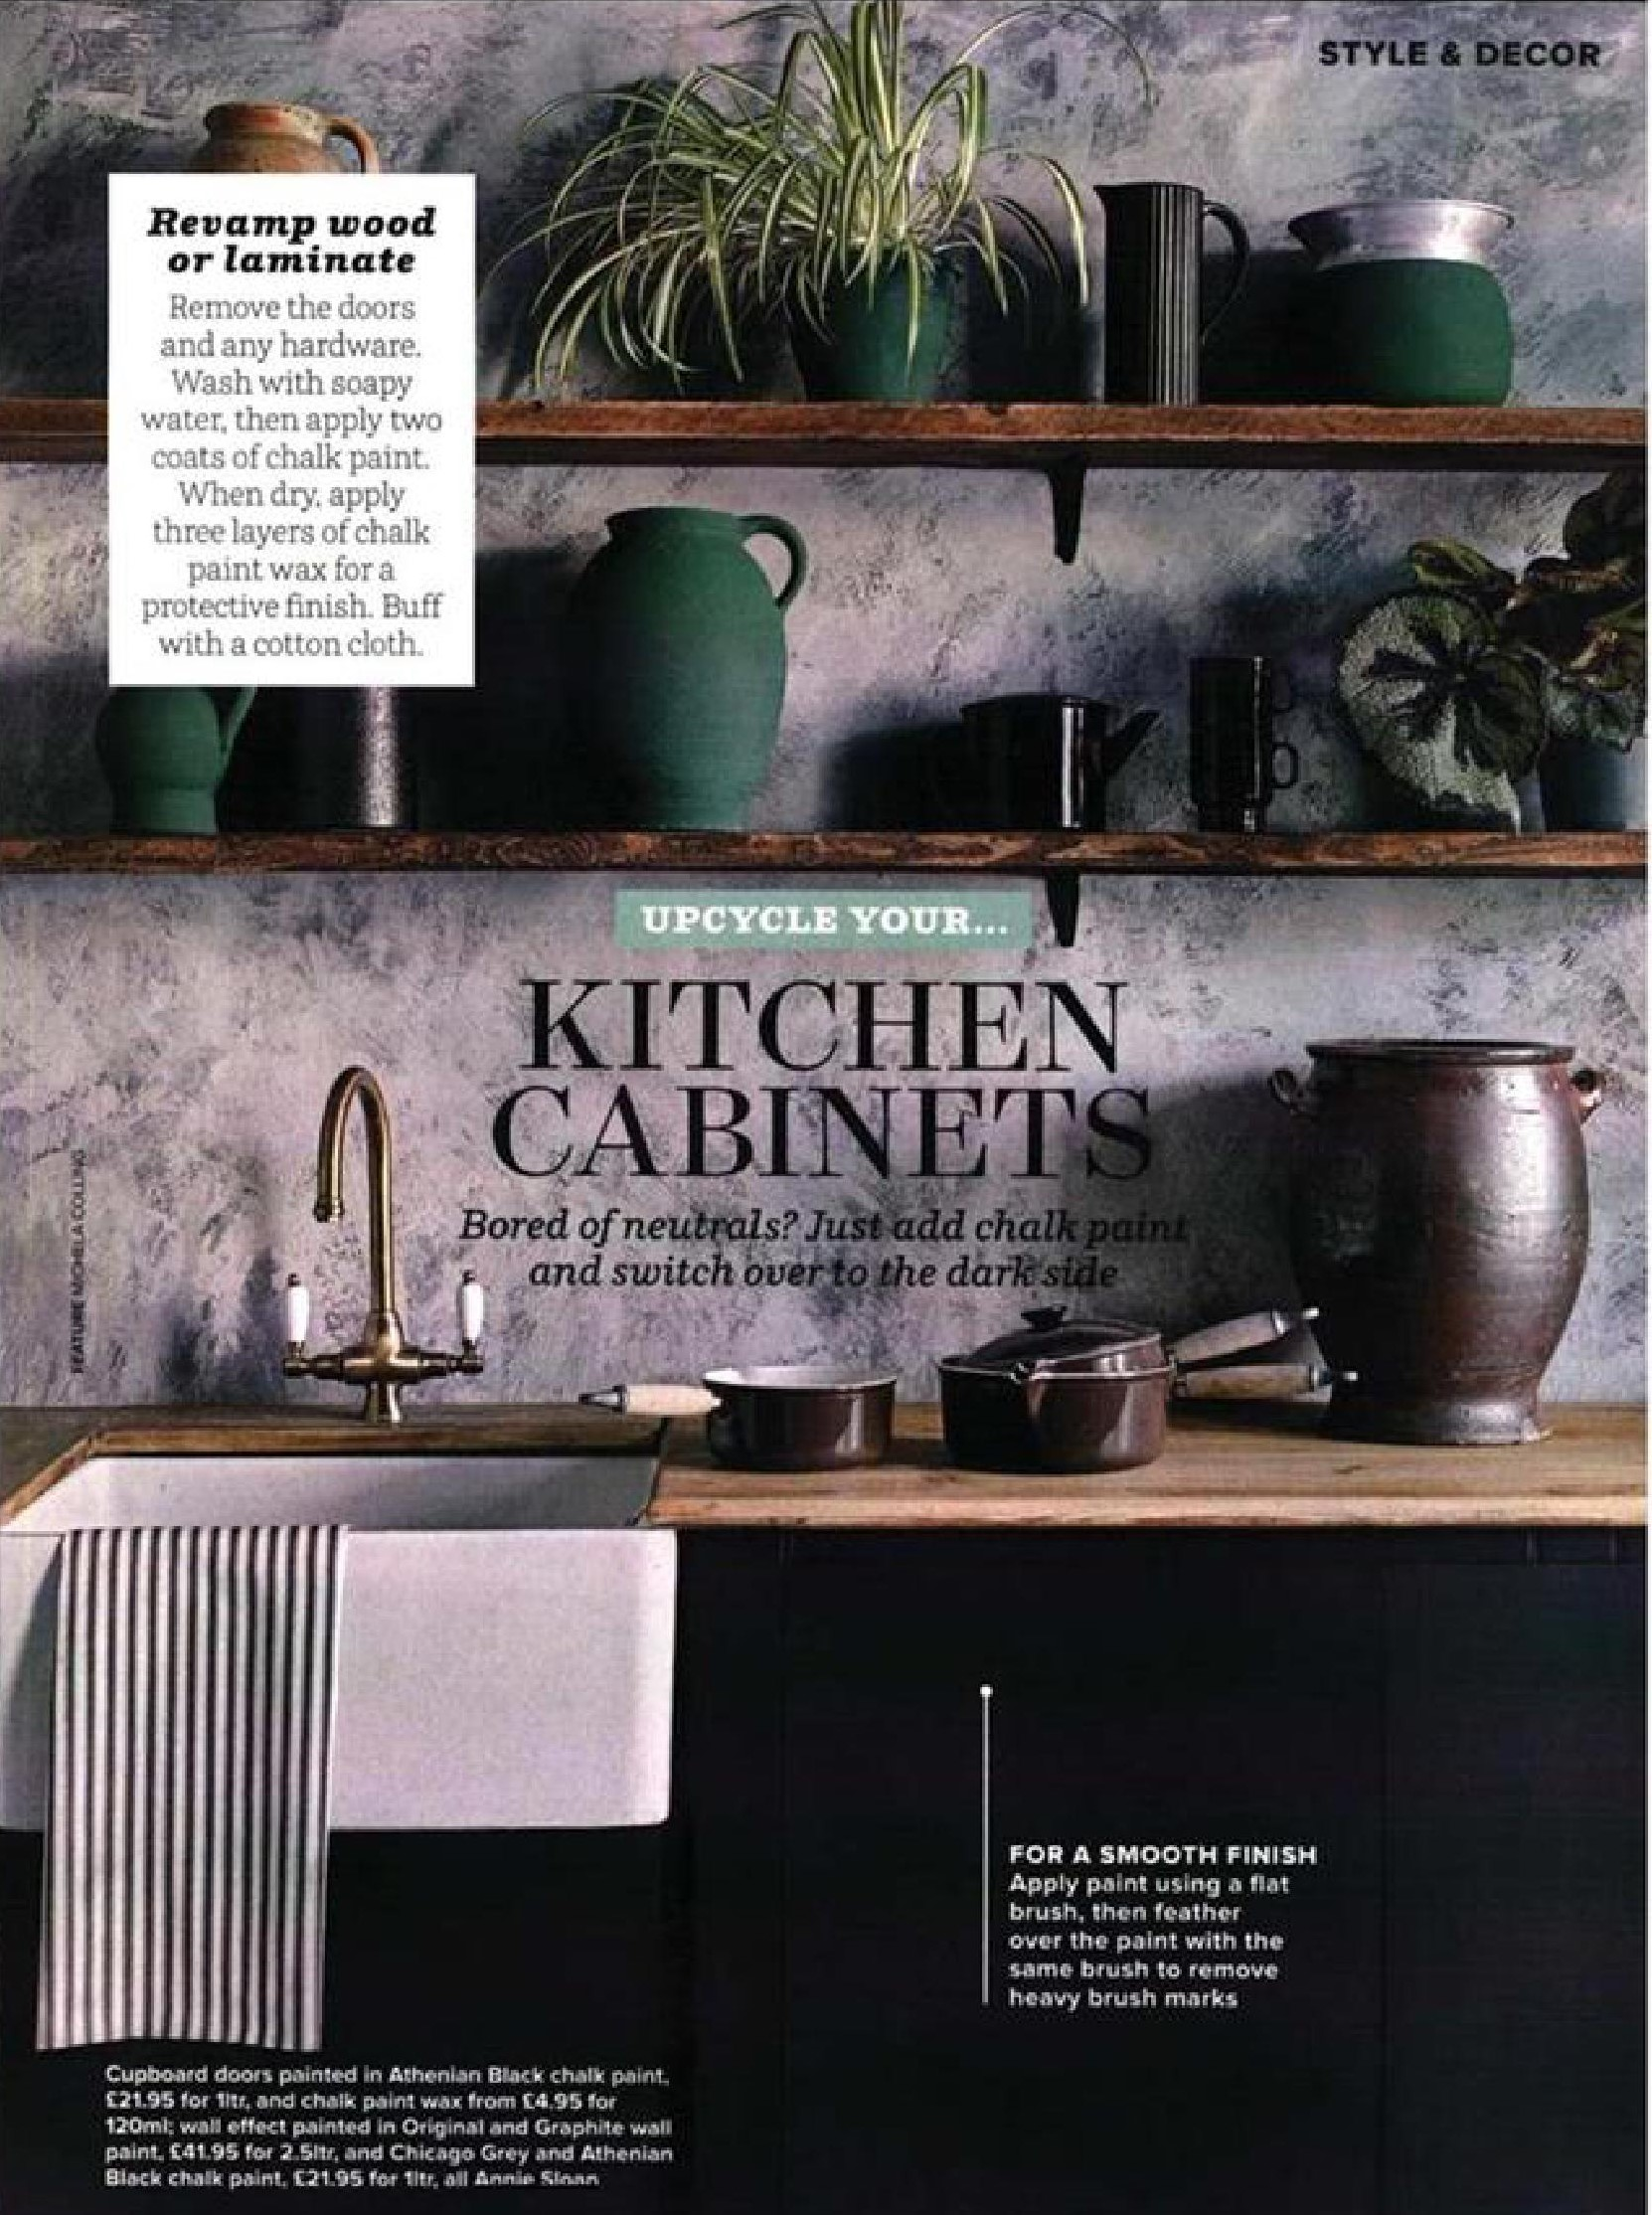 Switch over to the dark side with Annie Sloan's Athenian Black and Graphite Chalk Paint in Ideal Home's upcycle feature